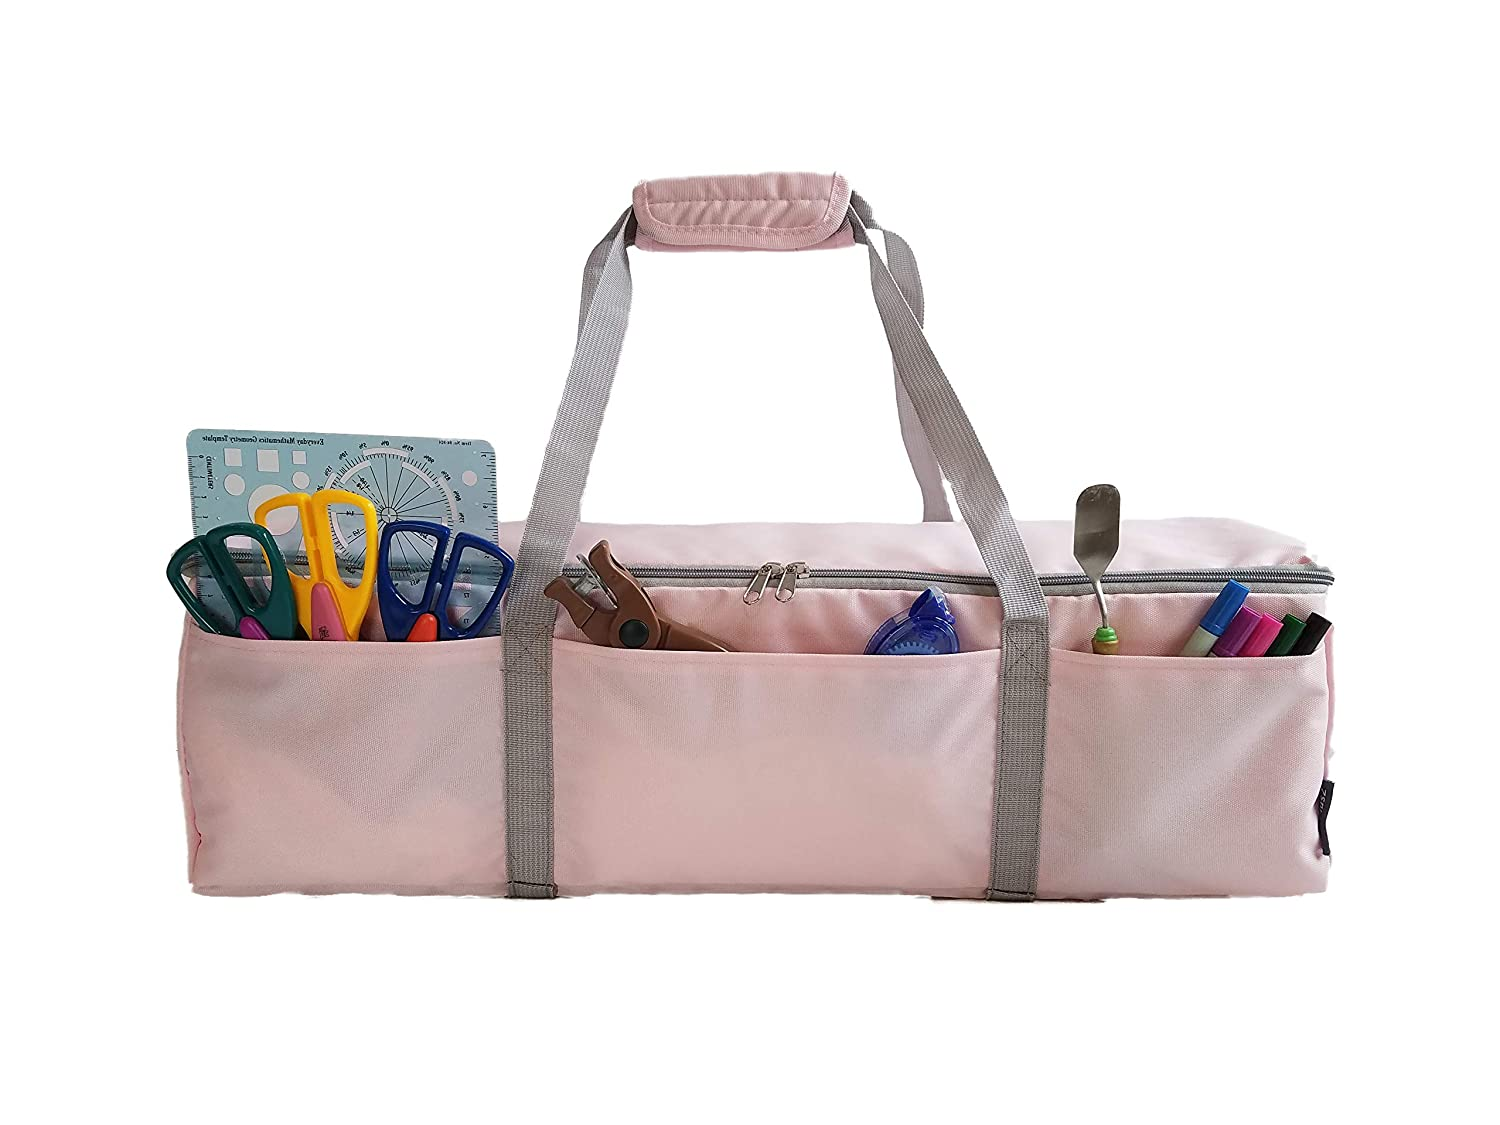 StarPlus2 Craft Machine Carry Bag Explore Air 2 Explore One Sized to Fit Cricut Explore Explore Air Velcro Handle Pink Not Padded Maker